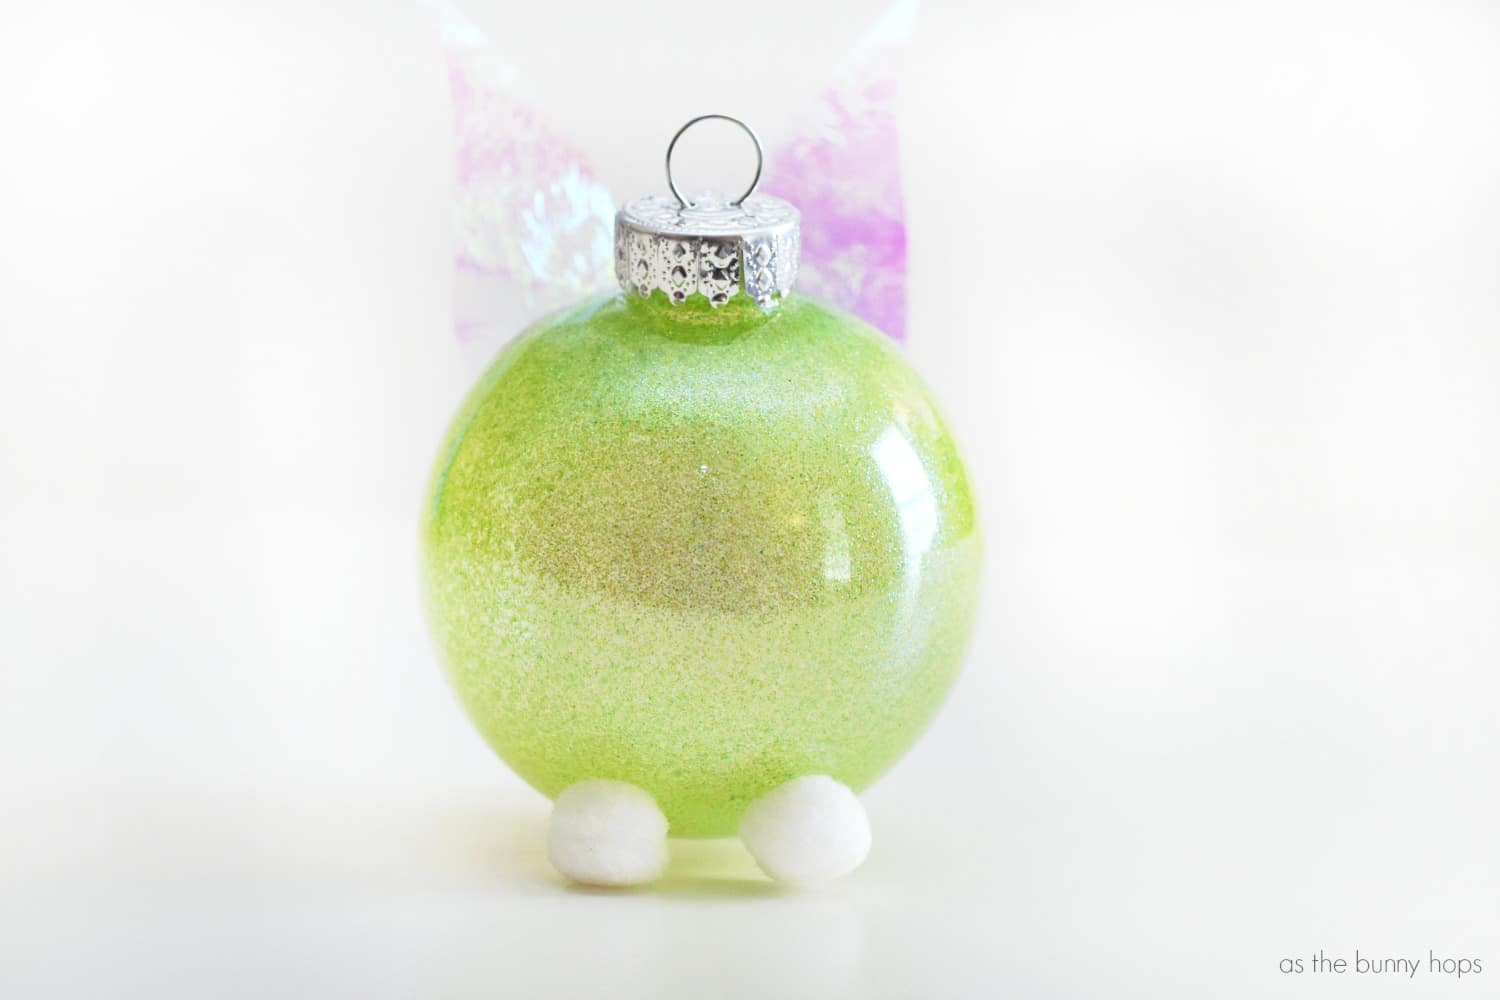 Tinker bell inspired christmas ornament as the bunny hops